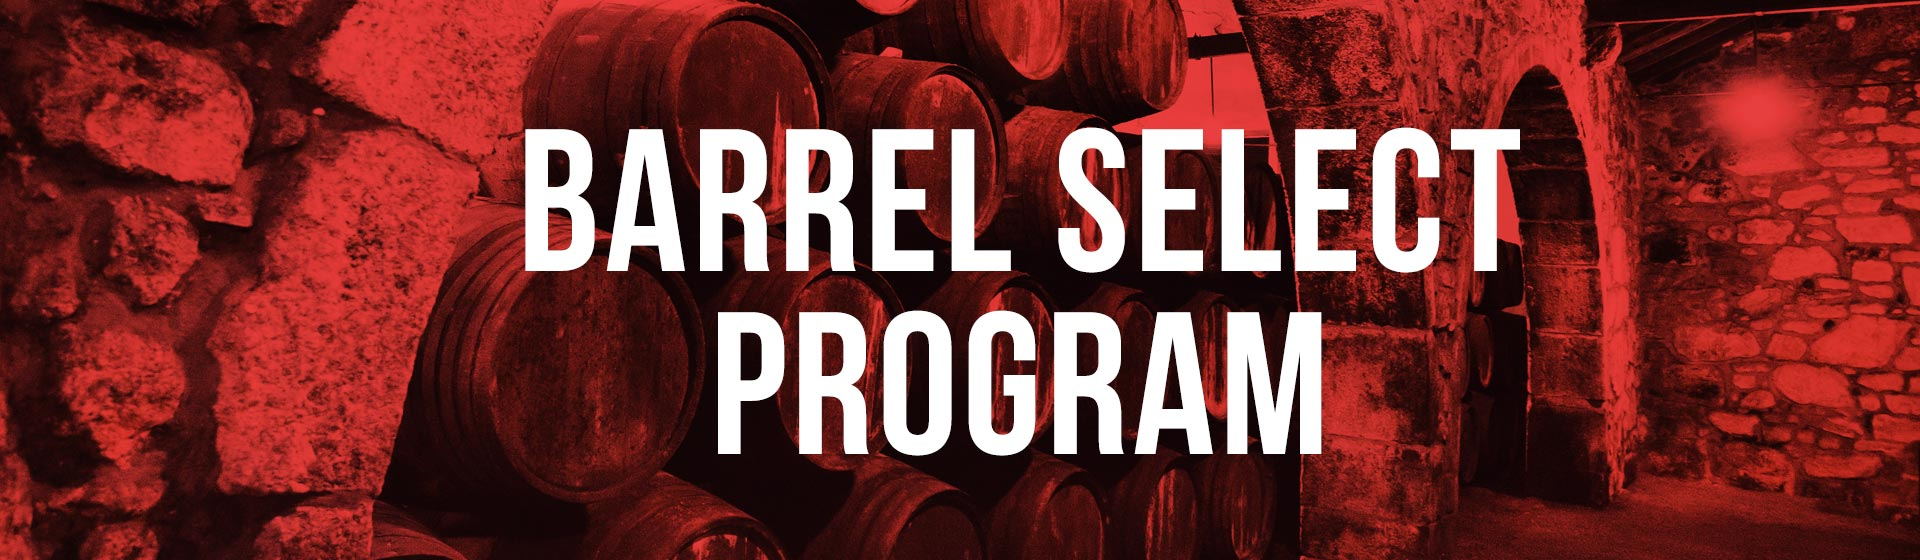 Barrel Select Program